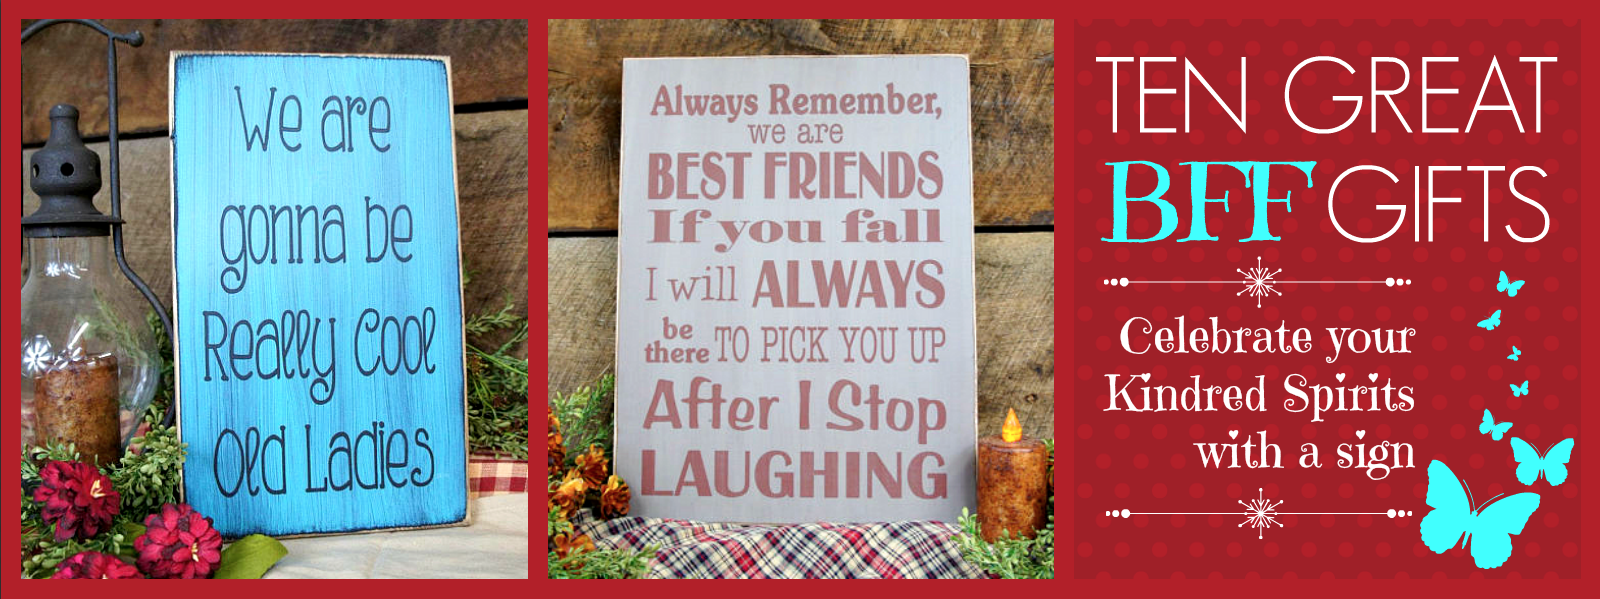 Ten Great BFF Gifts: Celebrate your Kindred Spirits with a sign